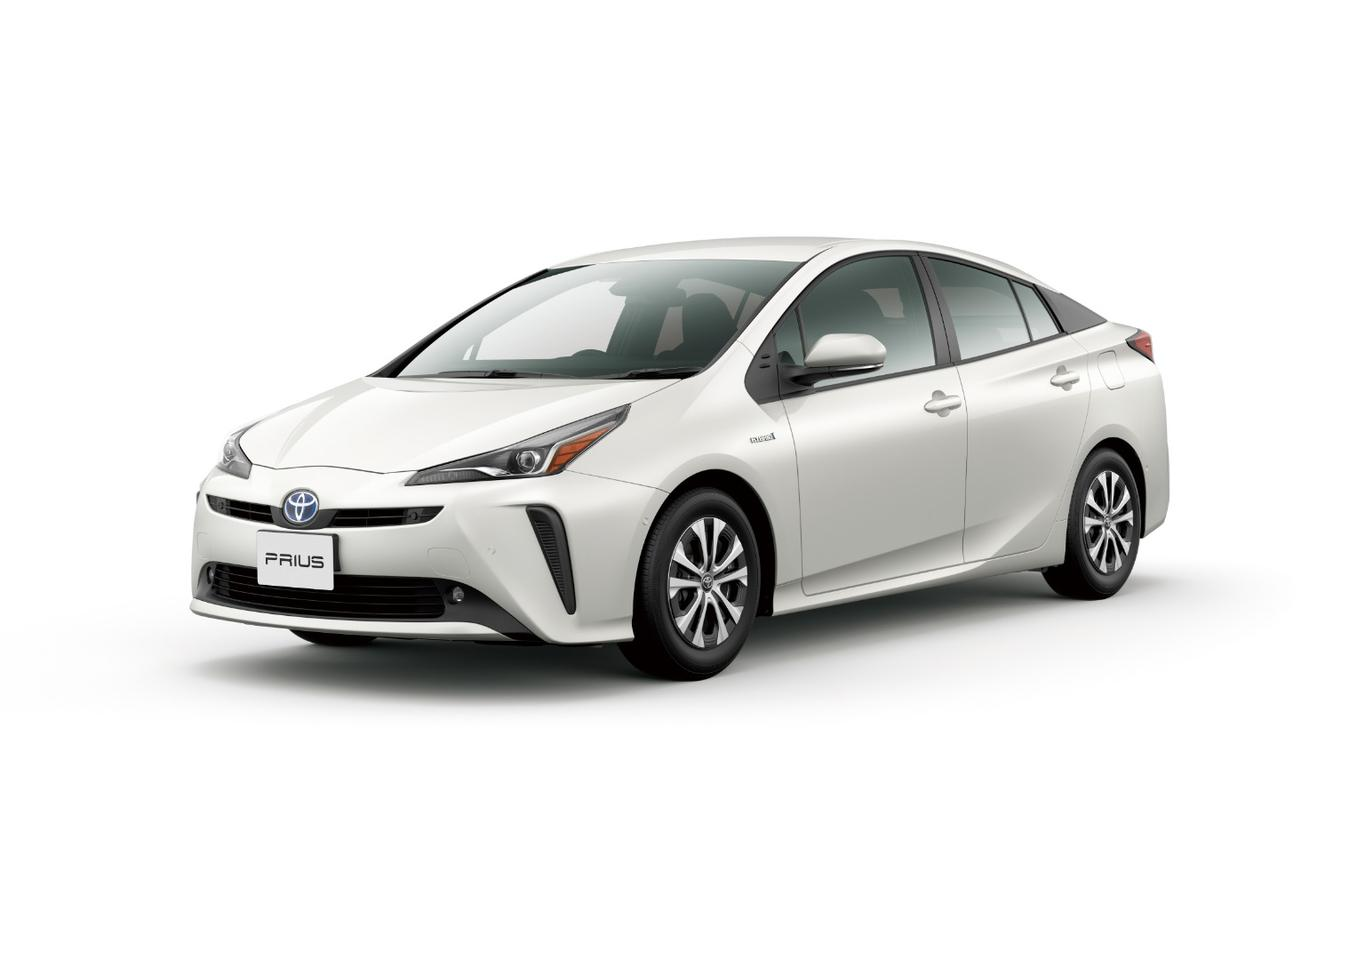 Following in the footsteps of other big name automakers in recent times, Toyota is set to introduce a car subscription service that will tempt drivers away from traditional car ownership